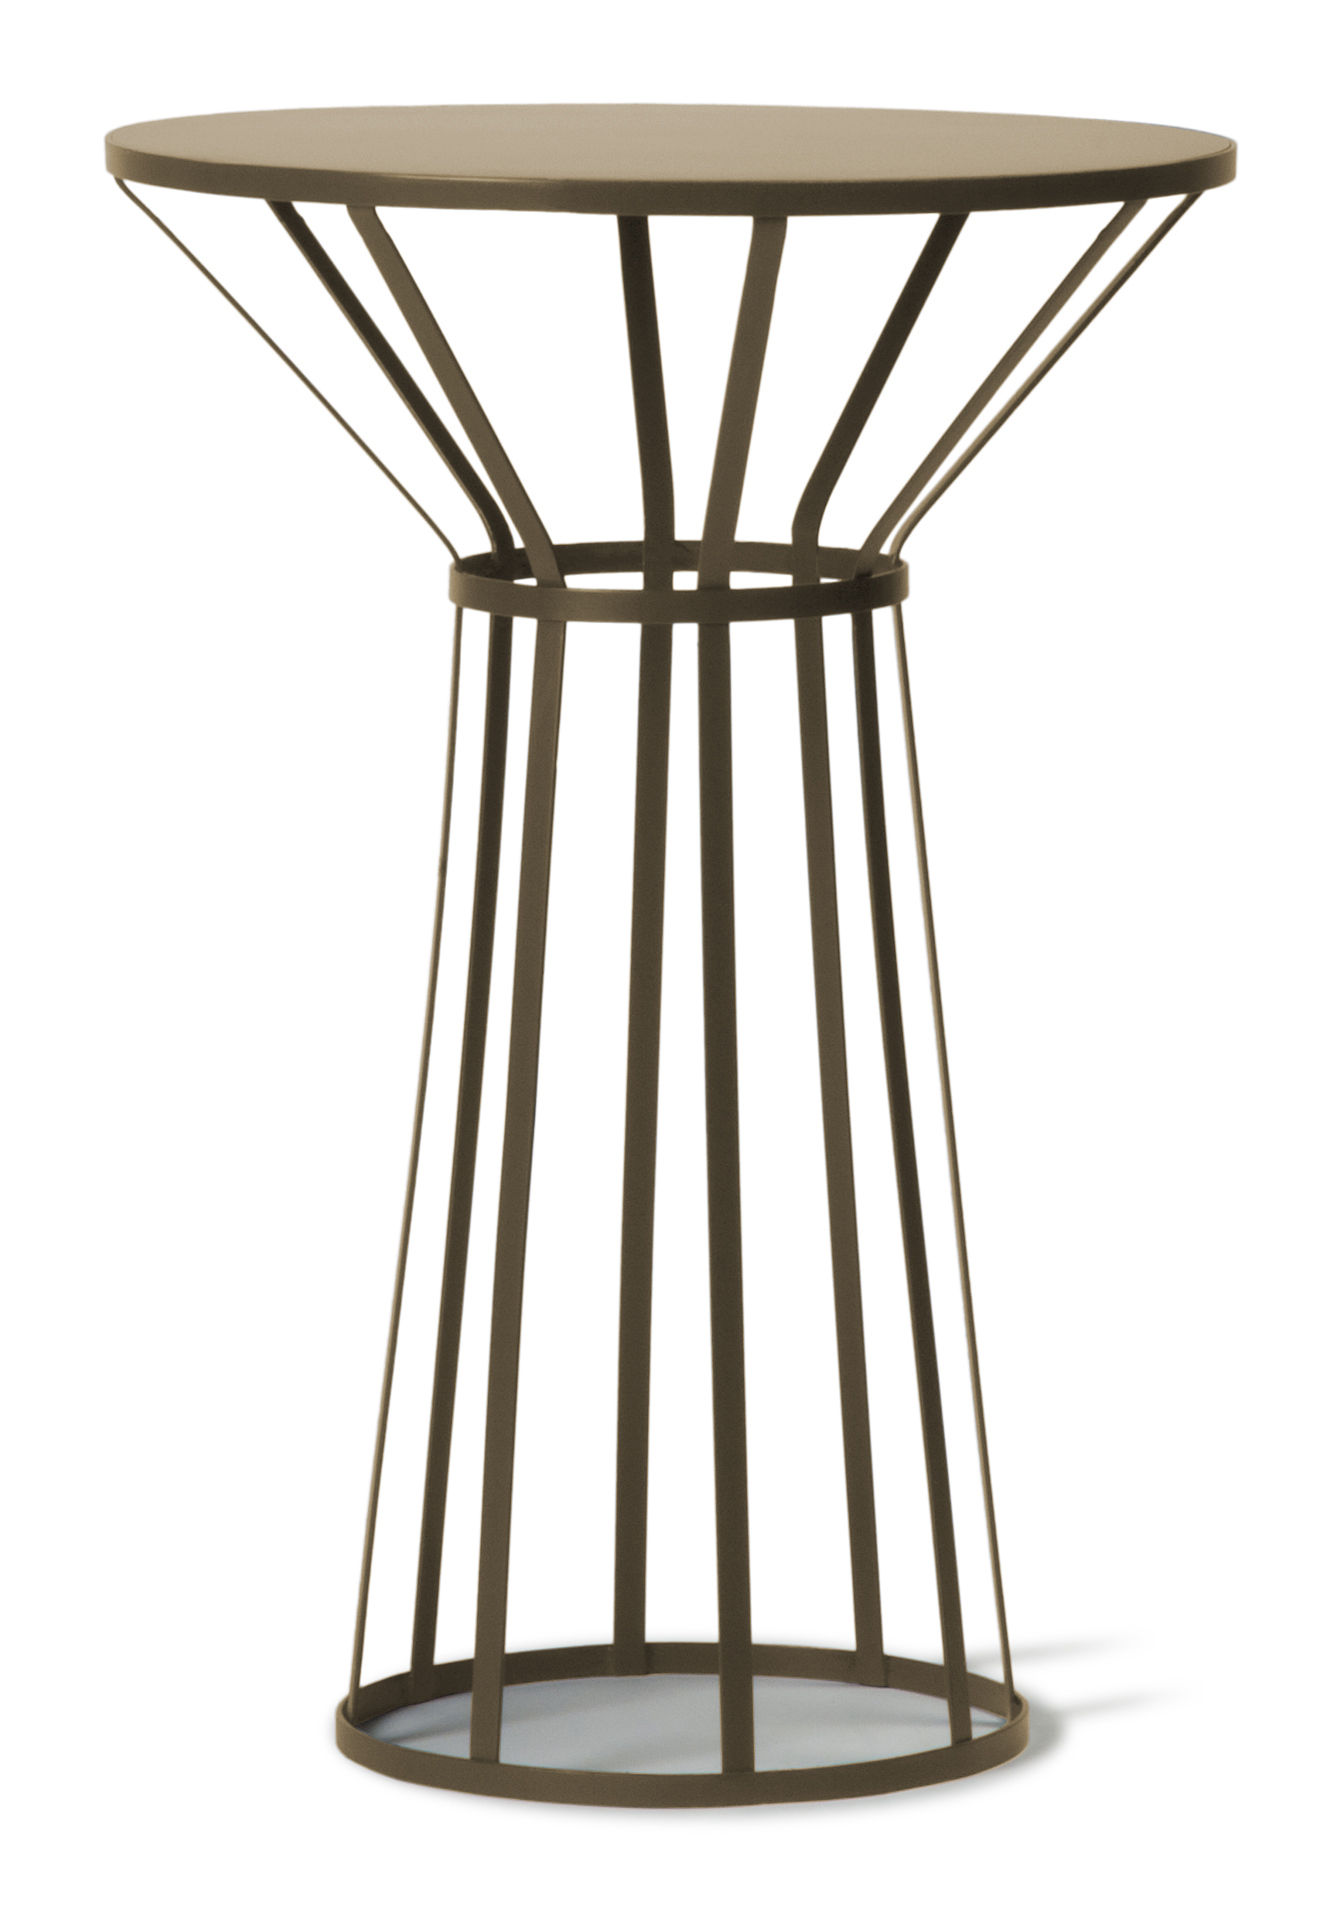 Furniture - Coffee Tables - Hollo Small table - H 73 cm by Petite Friture - Mat gold - Epoxy painted stainless steel